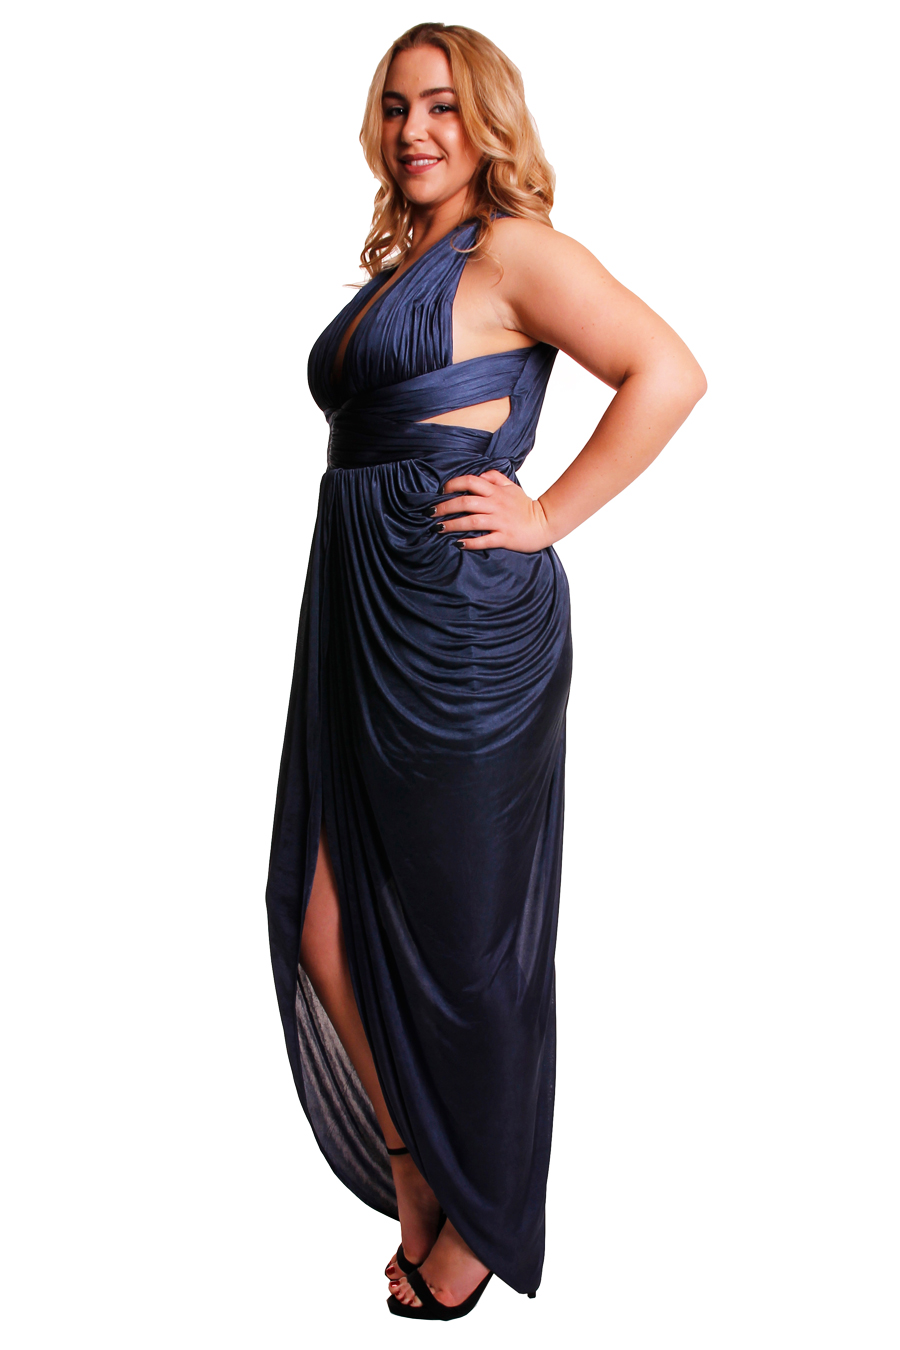 Sheike Goddess Gown in Slate - Perth Dress Hire - My Sisters Boudoir